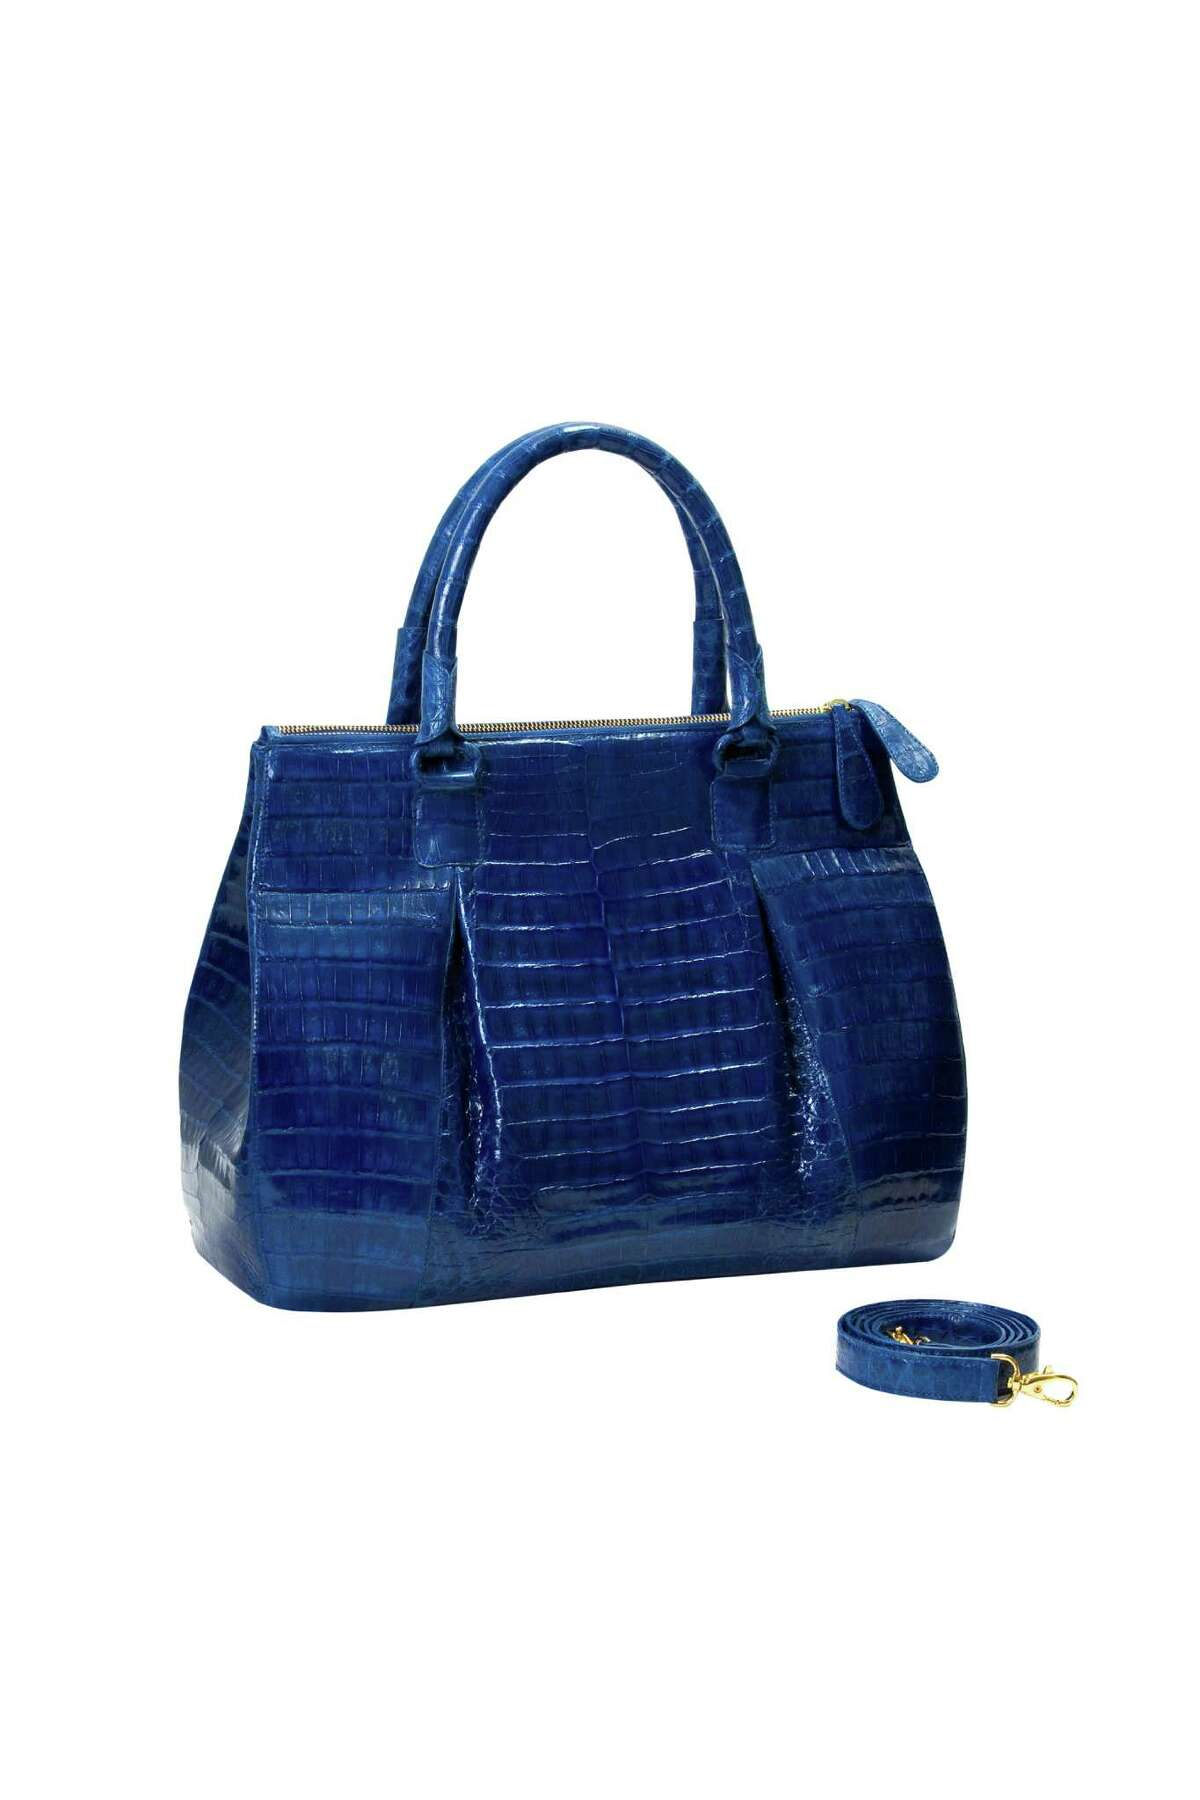 Through Feb. 20, Neiman Marcus is offering a customization program for the first time on Nancy Gonzalez handbags. Here the Plisse Tote, $3,800, is shown.